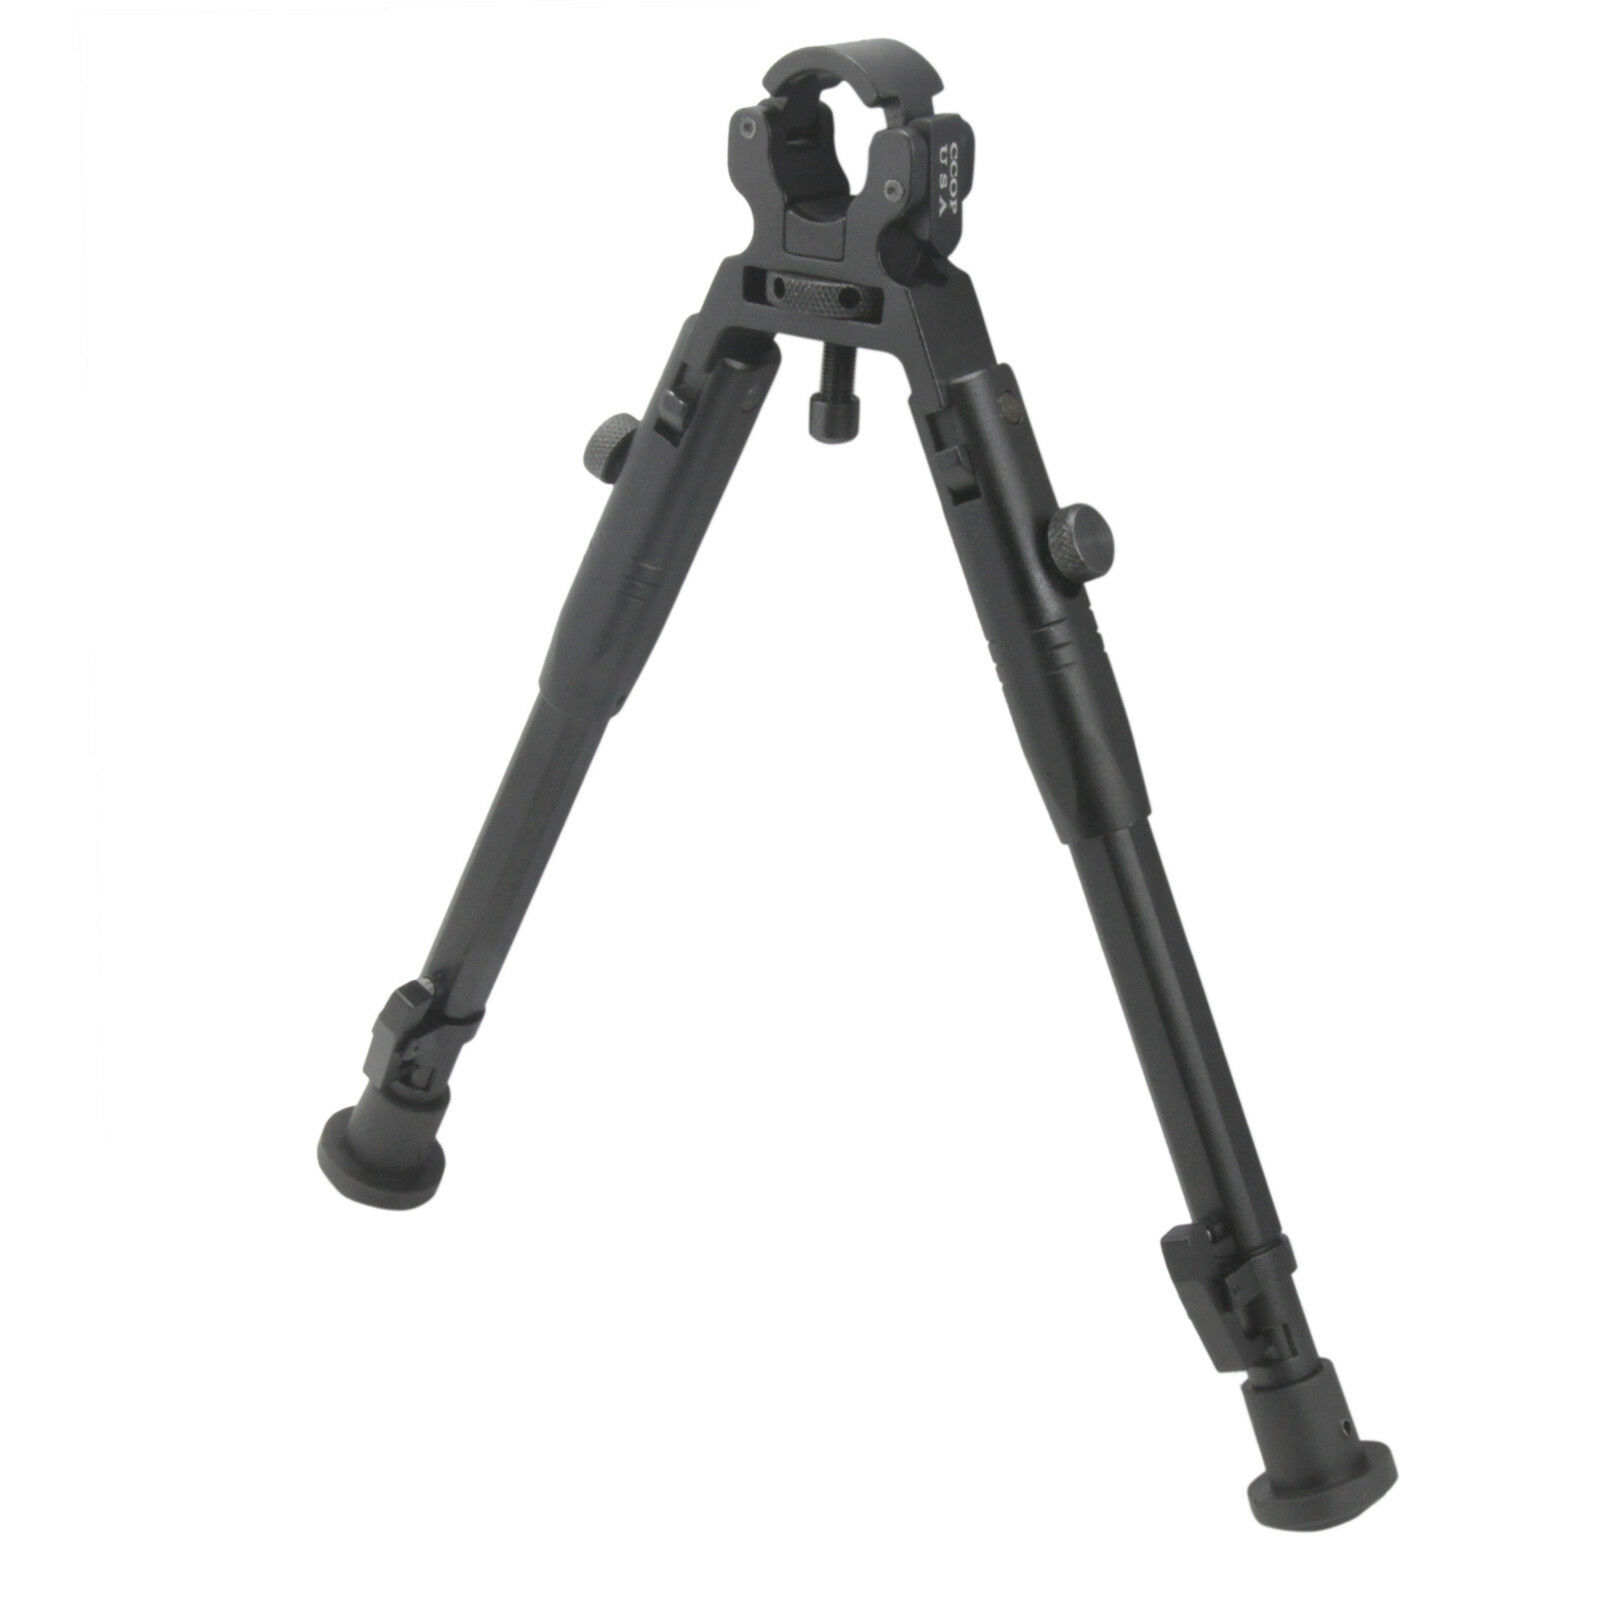 CCOP USA Tactical Hunting Clamp-On Rifle Adjustable Bipod Stabilizer BP-39AM